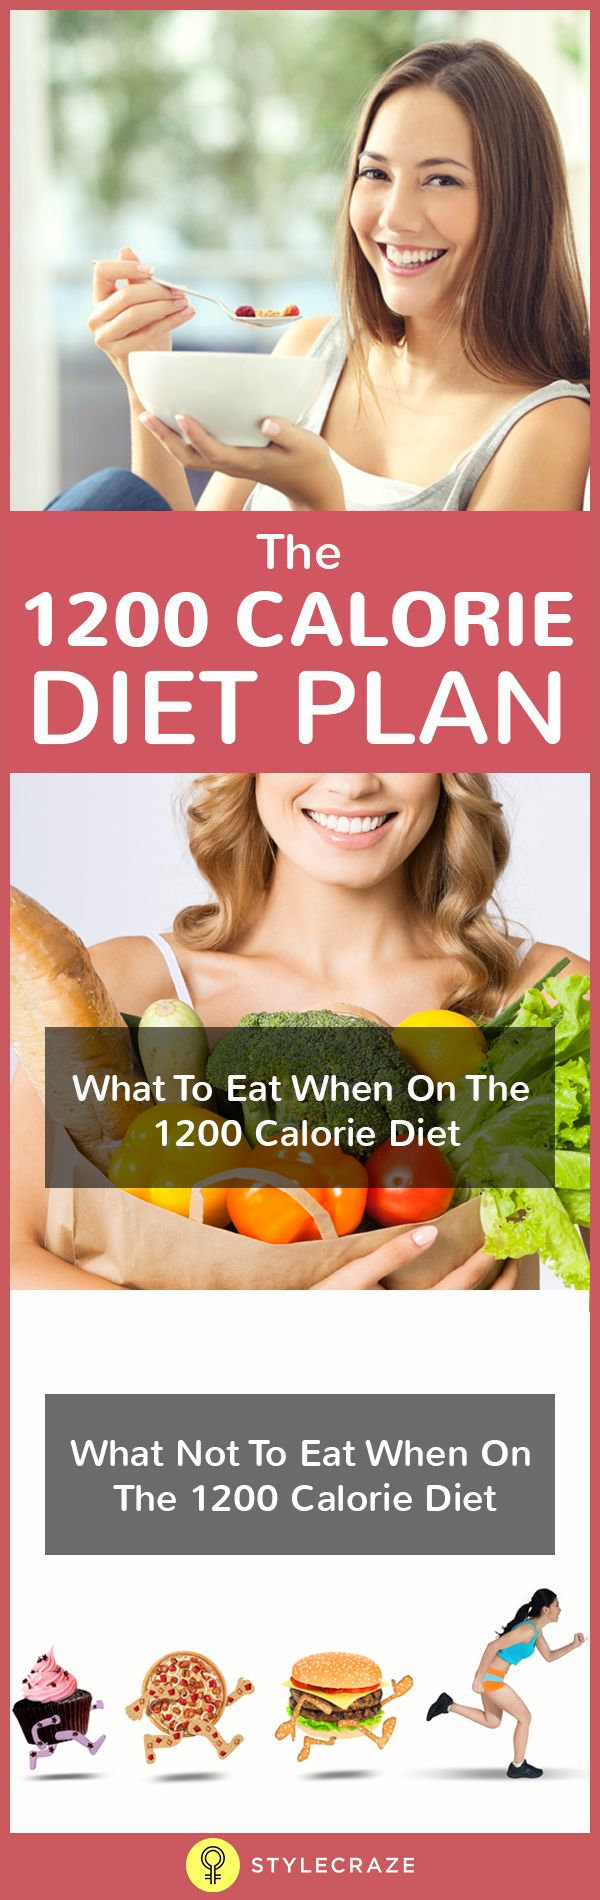 The 1200 Calorie Diet Plan What Foods To Eat And Avoid-The 1200 calorie diet plan is one of the most effective ways to lose 20 pounds in about 90 days. This is not a fad diet plan.